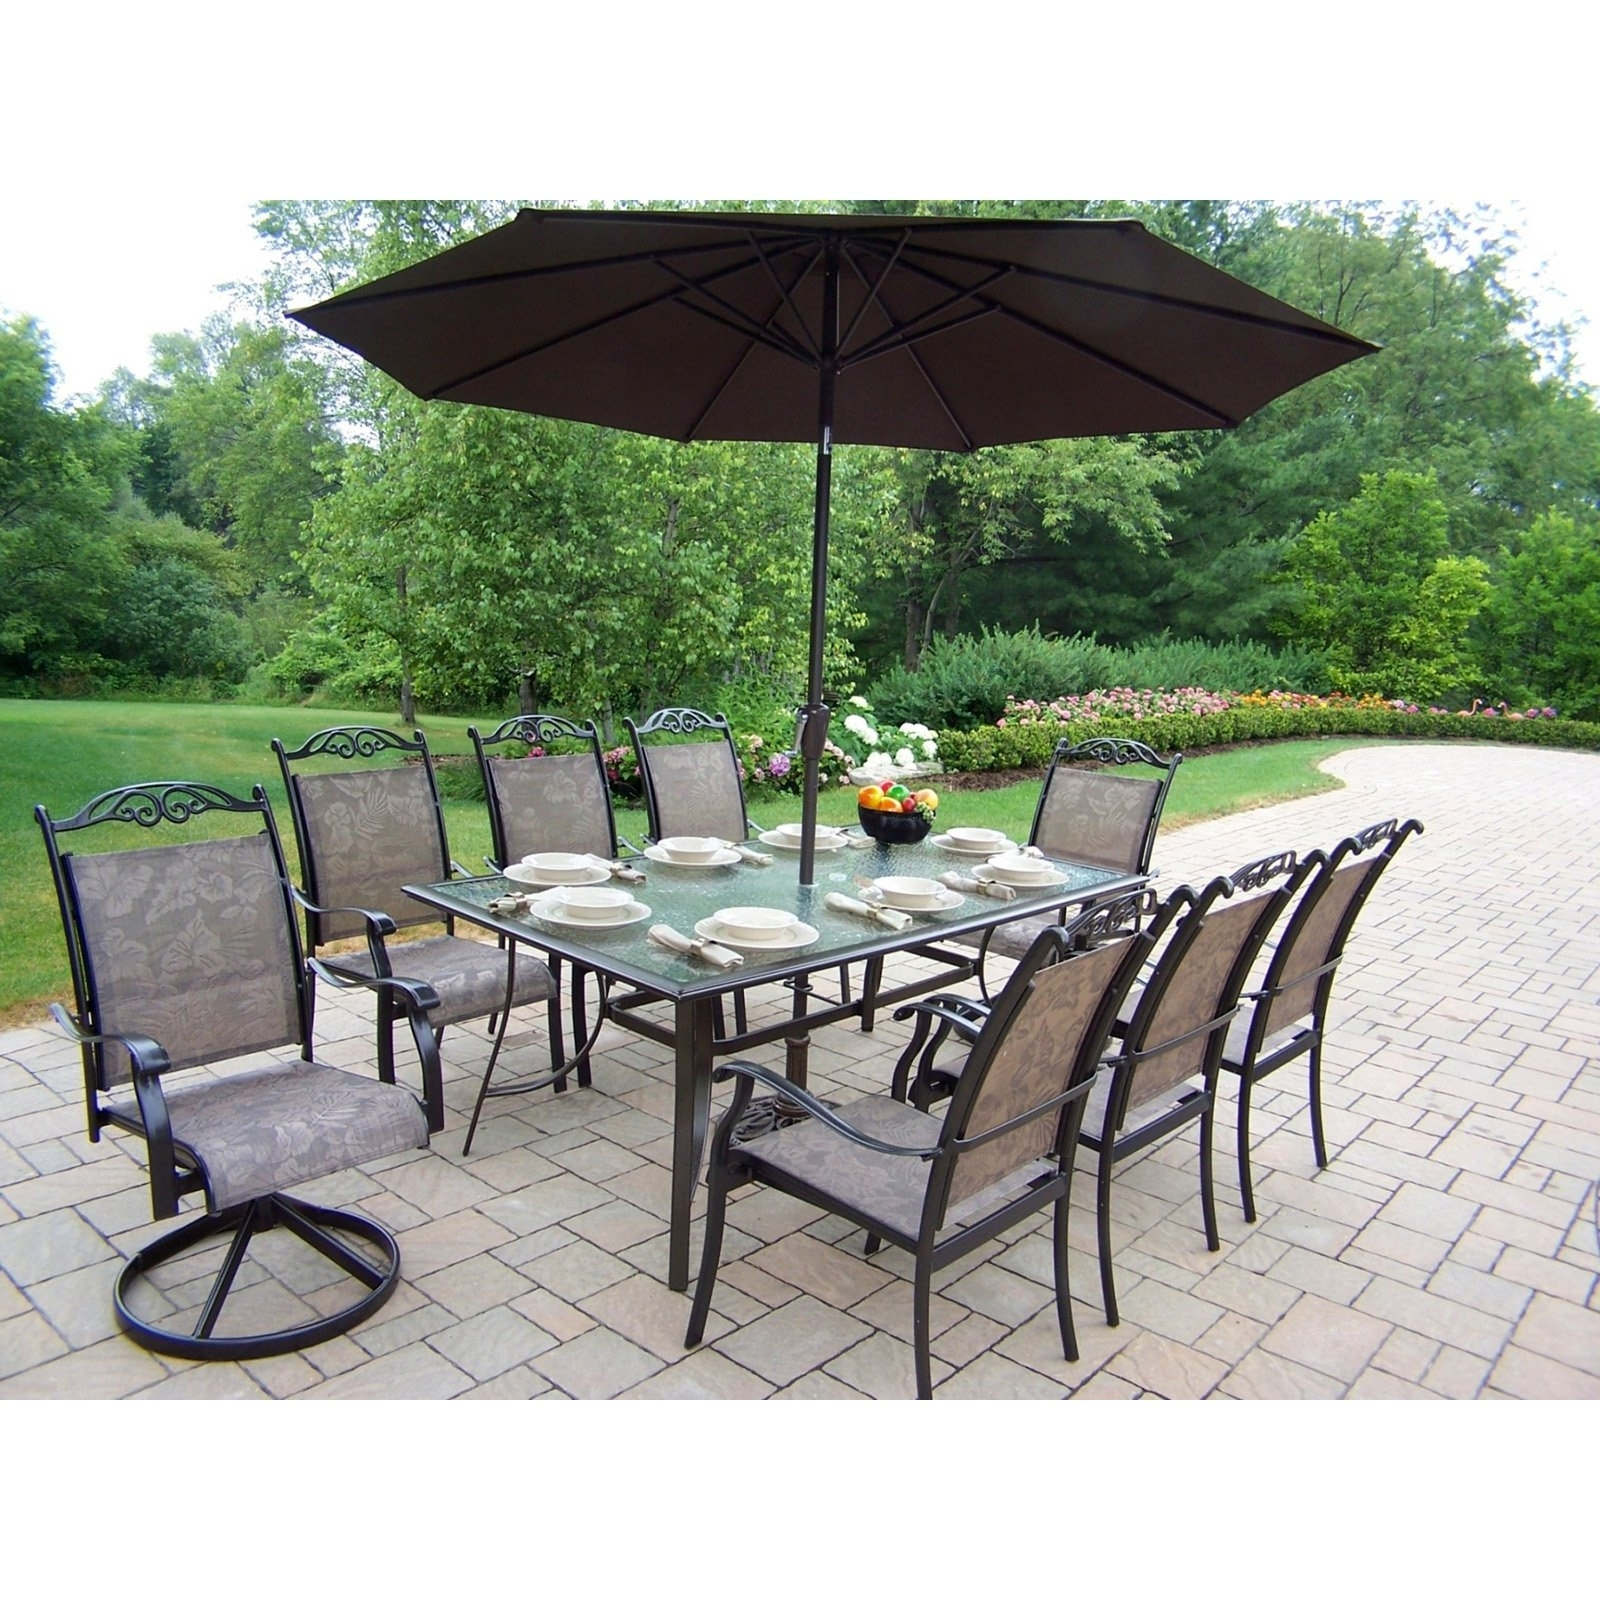 Oakland Living Cascade Patio Dining Set With Umbrella And Stand Inside Famous Patio Dining Sets With Umbrellas (View 3 of 20)